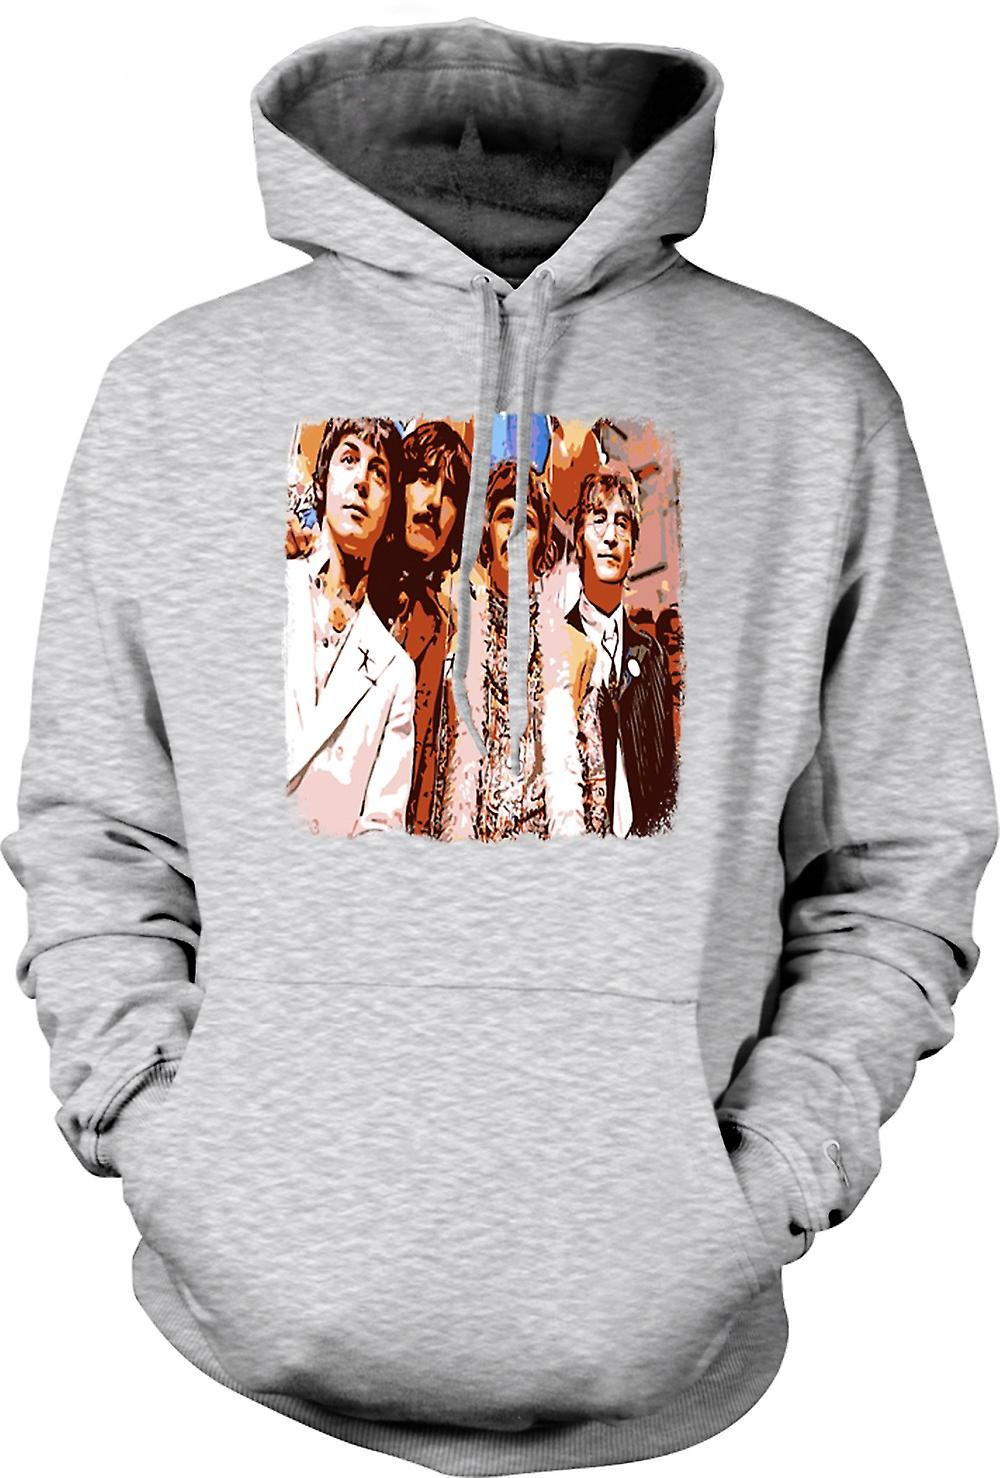 Mens Hoodie - The Beatles - Pop Art - 60s